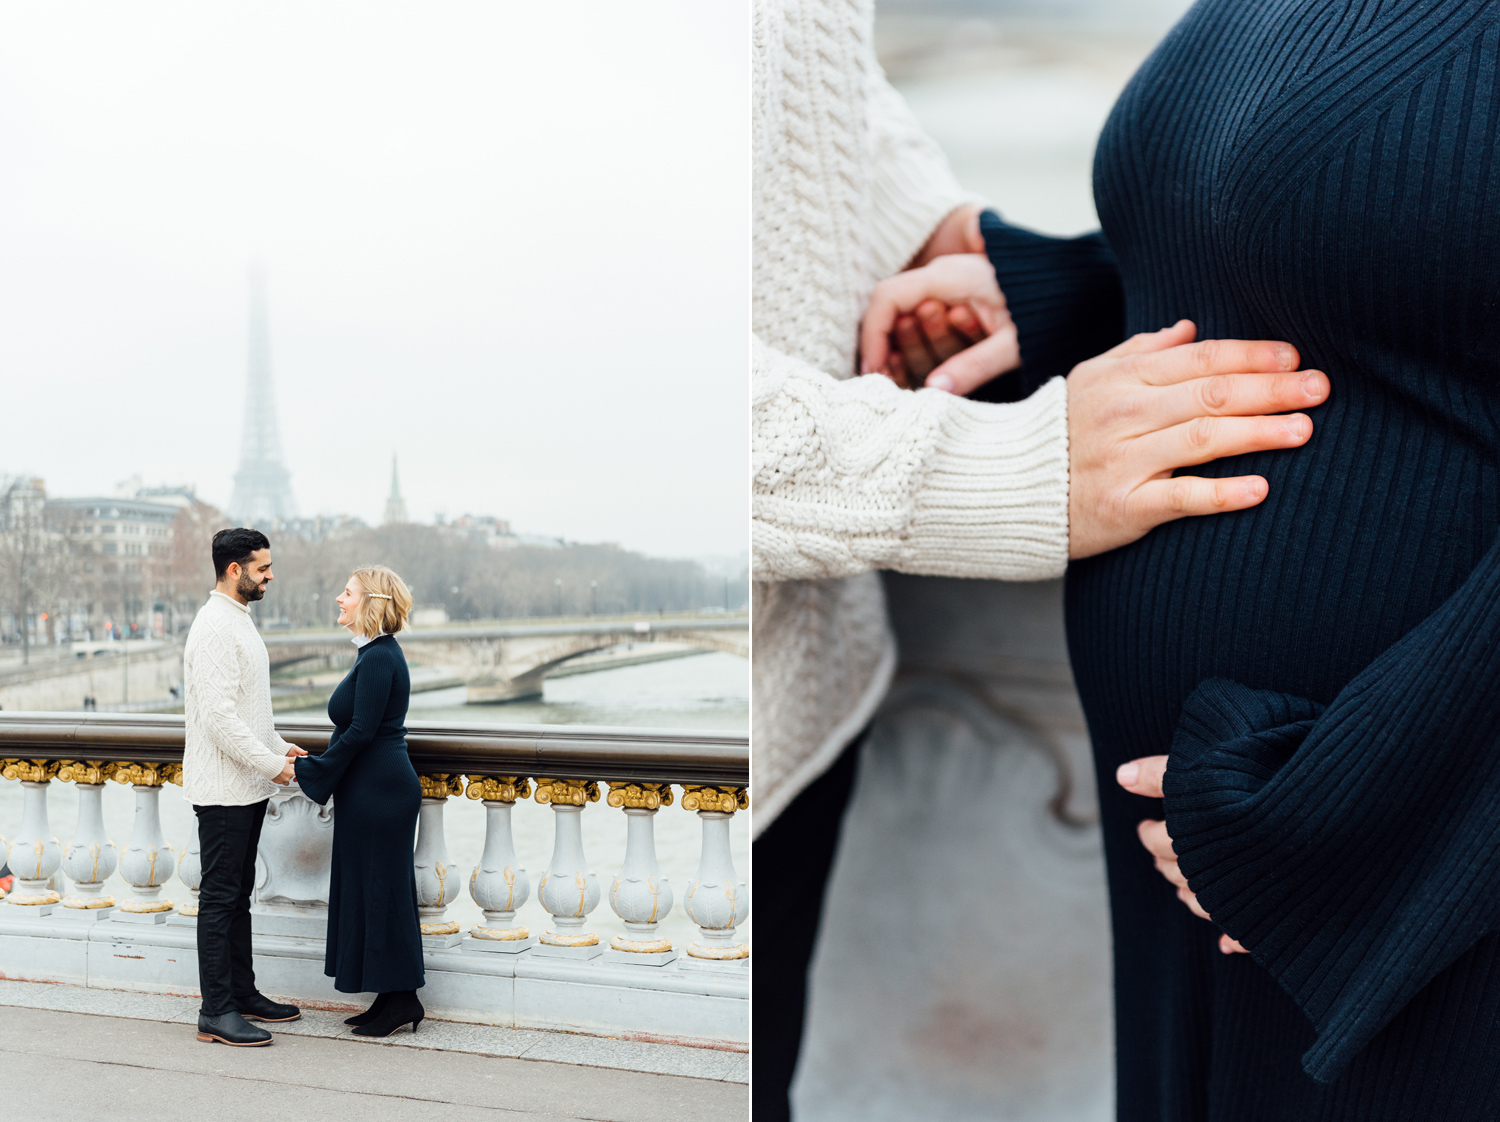 001-katie-mitchell-maternity-pregnancy-paris-photographer-france.jpg